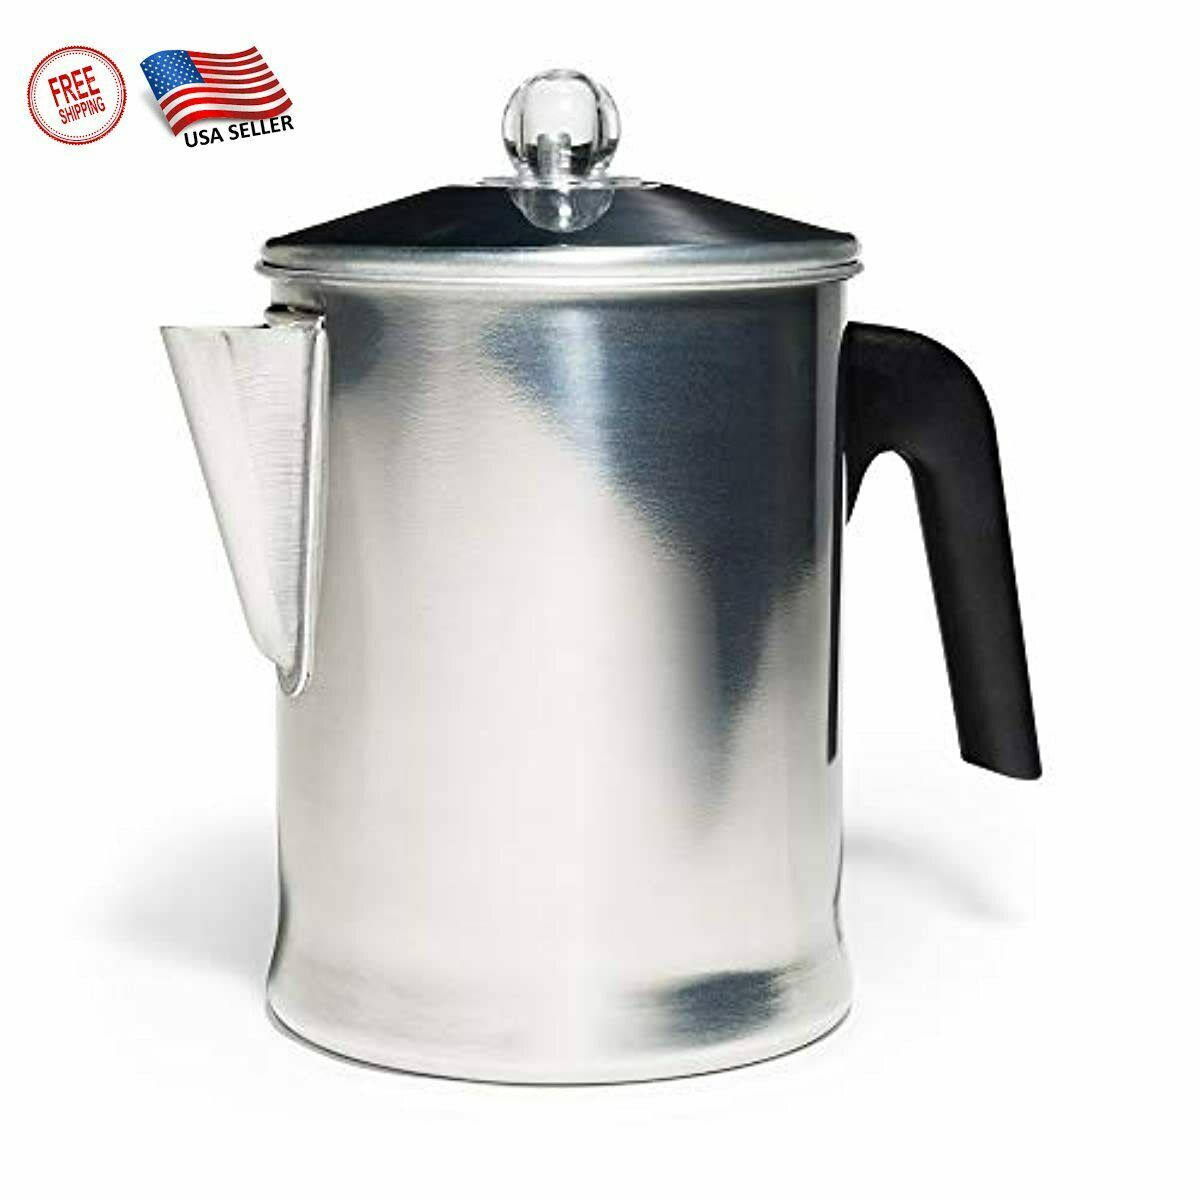 Durable Heavy Duty Stove Top Percolator Yosemite Coffee Pot